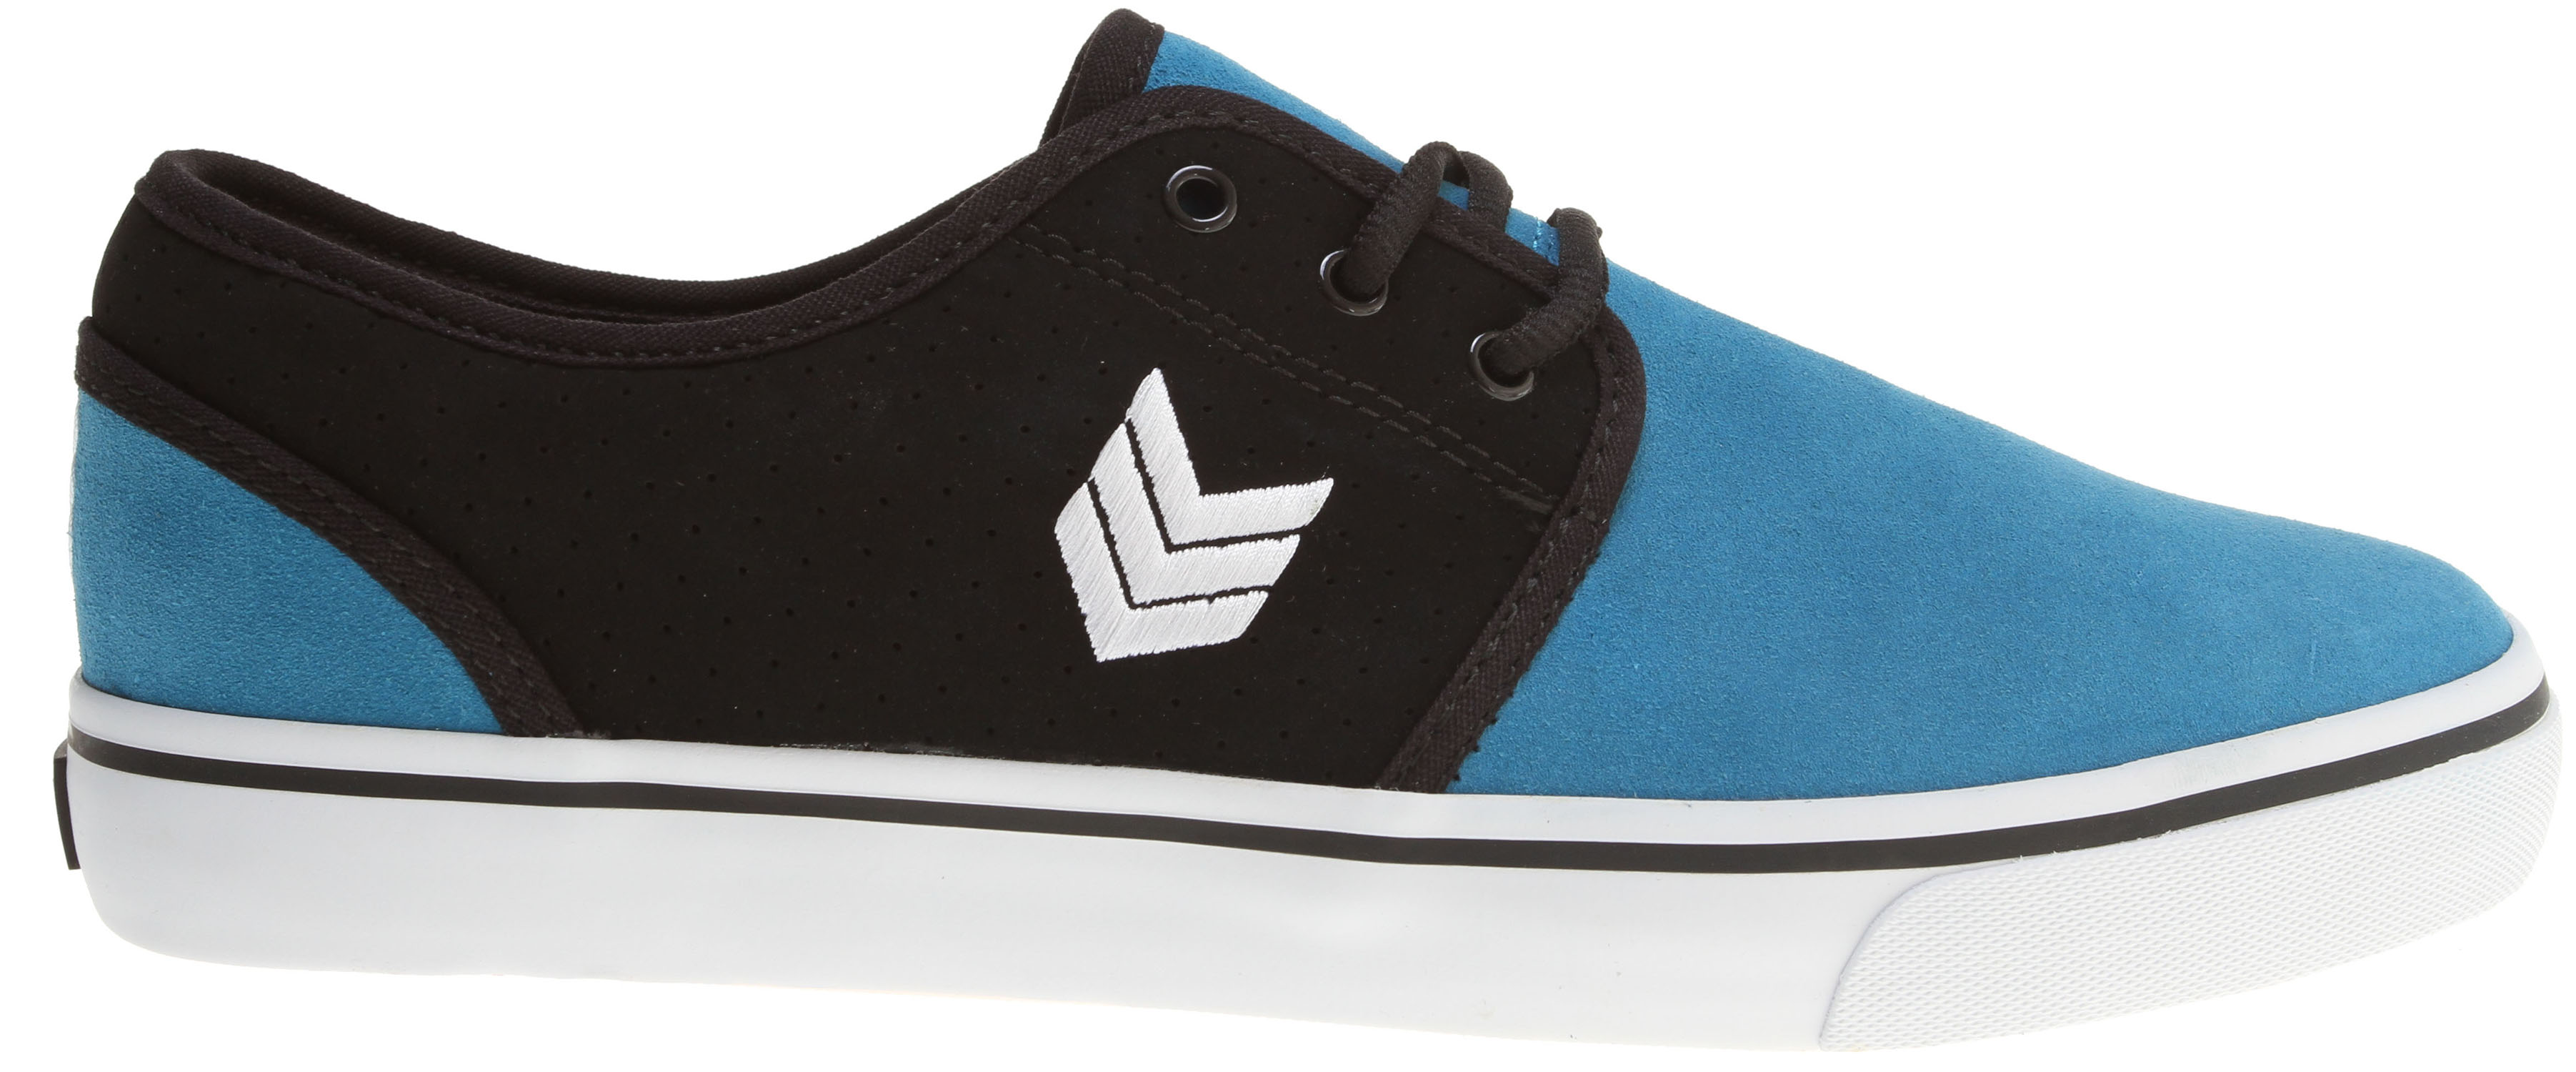 Skateboard Key Features of the Vox Slacker Skate Shoes: Vulcanized Construction Side Panel Eyestays Suede And Synthetic Upper Vox I.R.S. Gel System Gum Rubber Outsole - $24.95